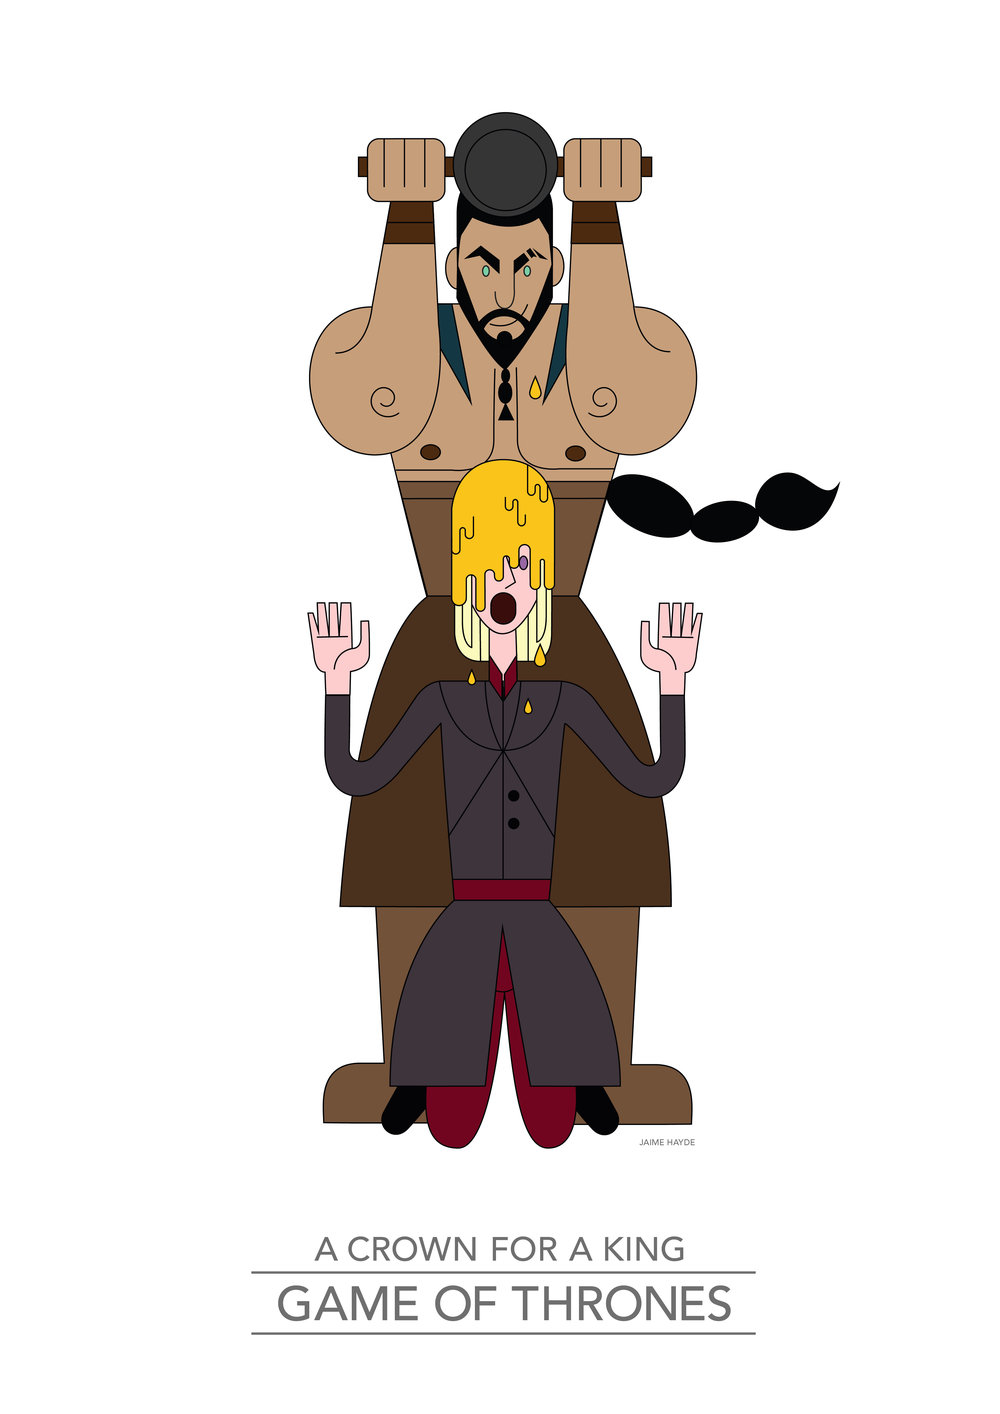 Game-of-thrones-Juego-de-tronos-illustration-khal drogo.jpg